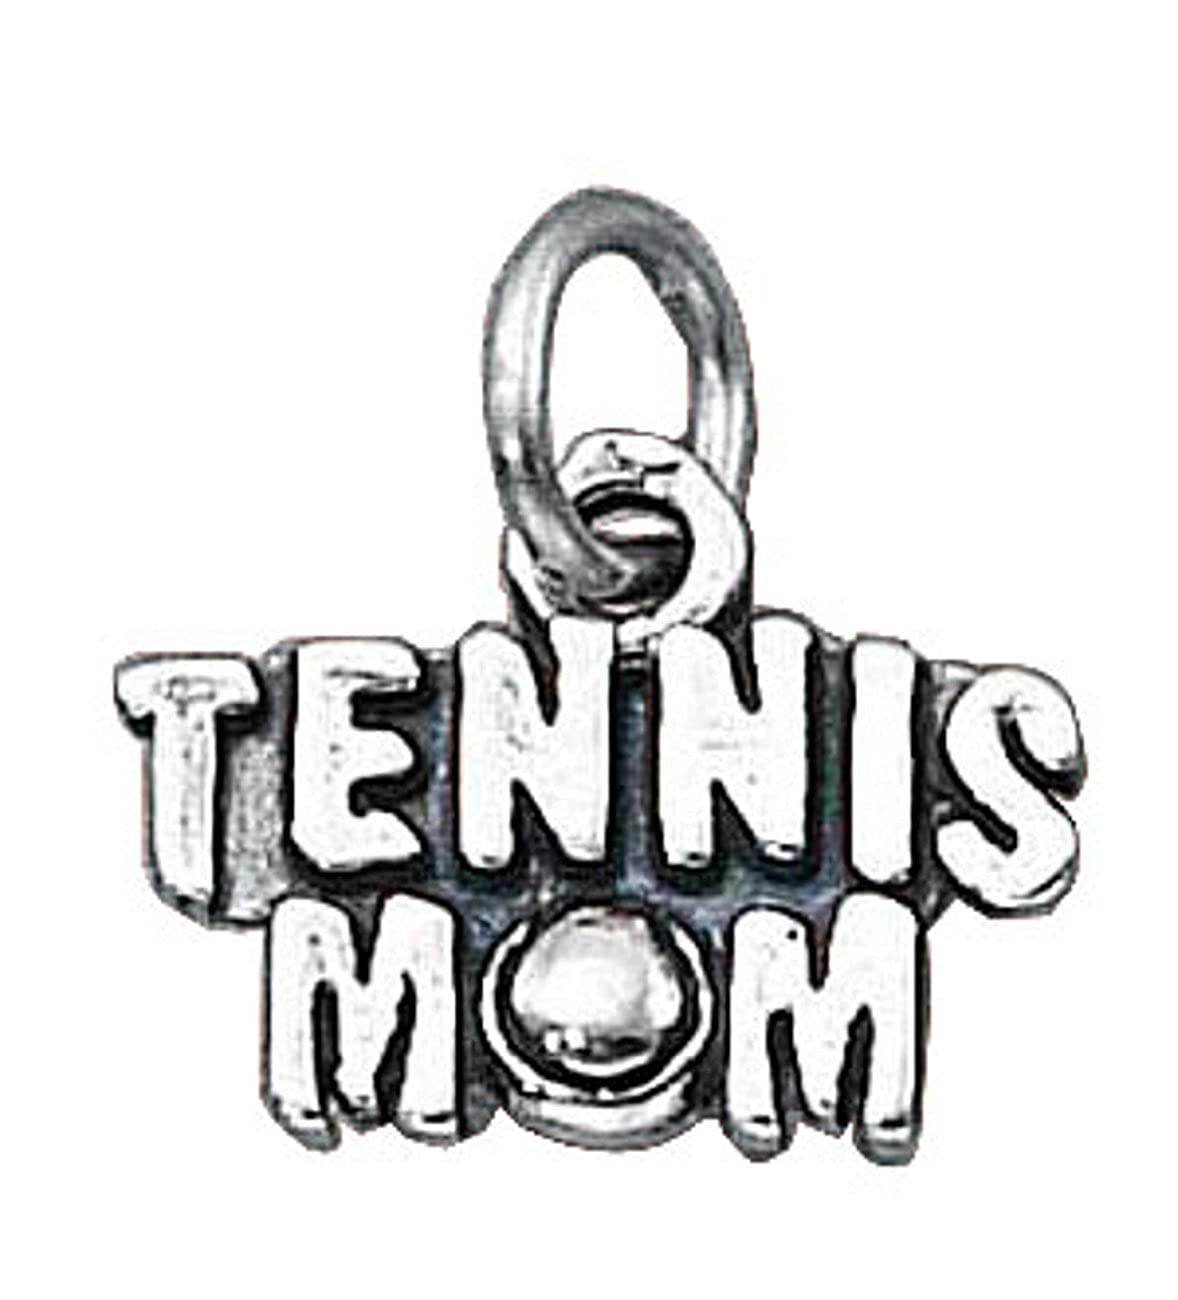 Sterling Silver 7 4.5mm Charm Bracelet With Attached TENNIS MOM Word Charm